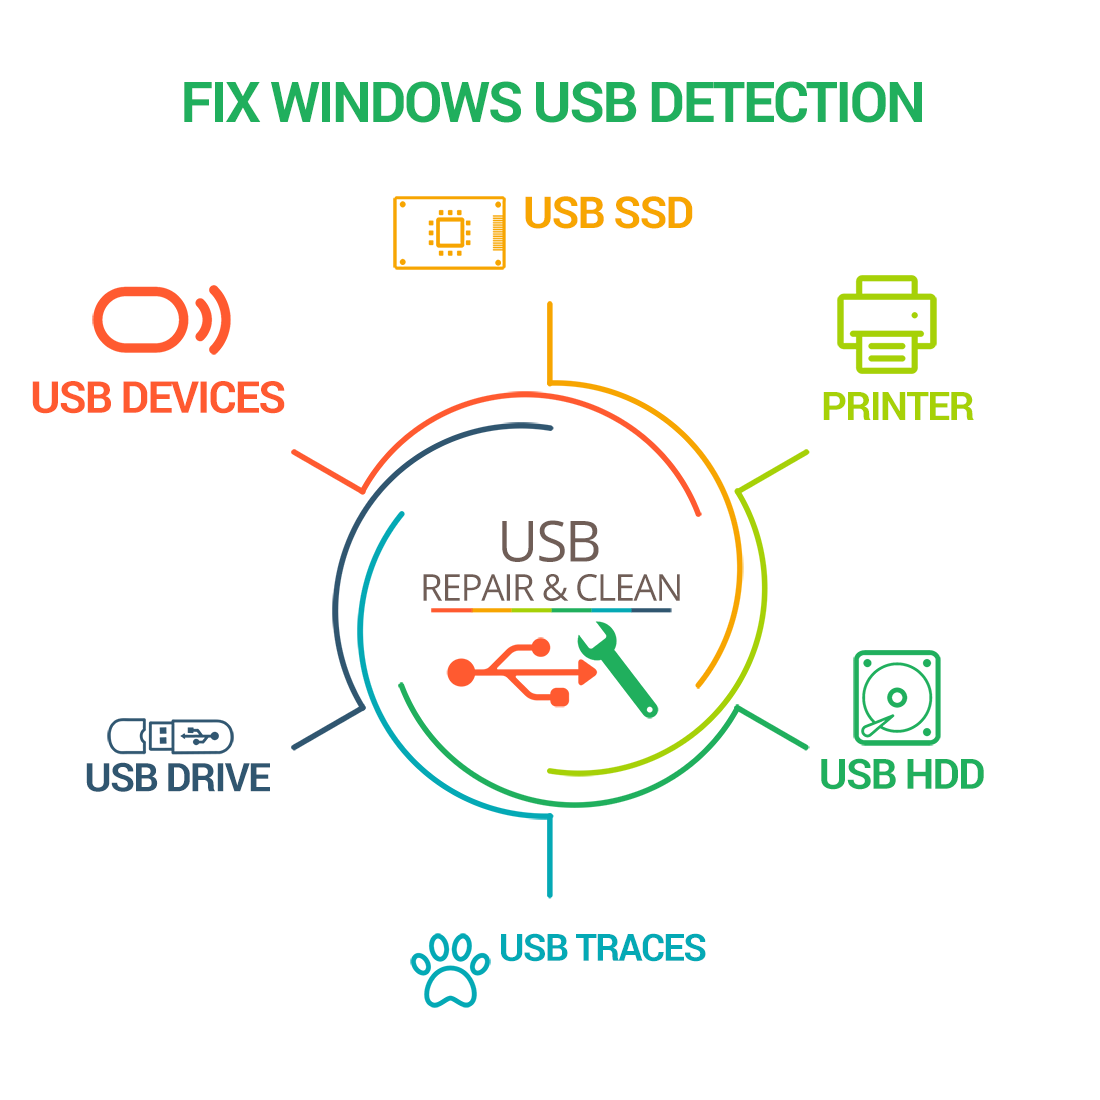 Fix Repair Windows USB Detection